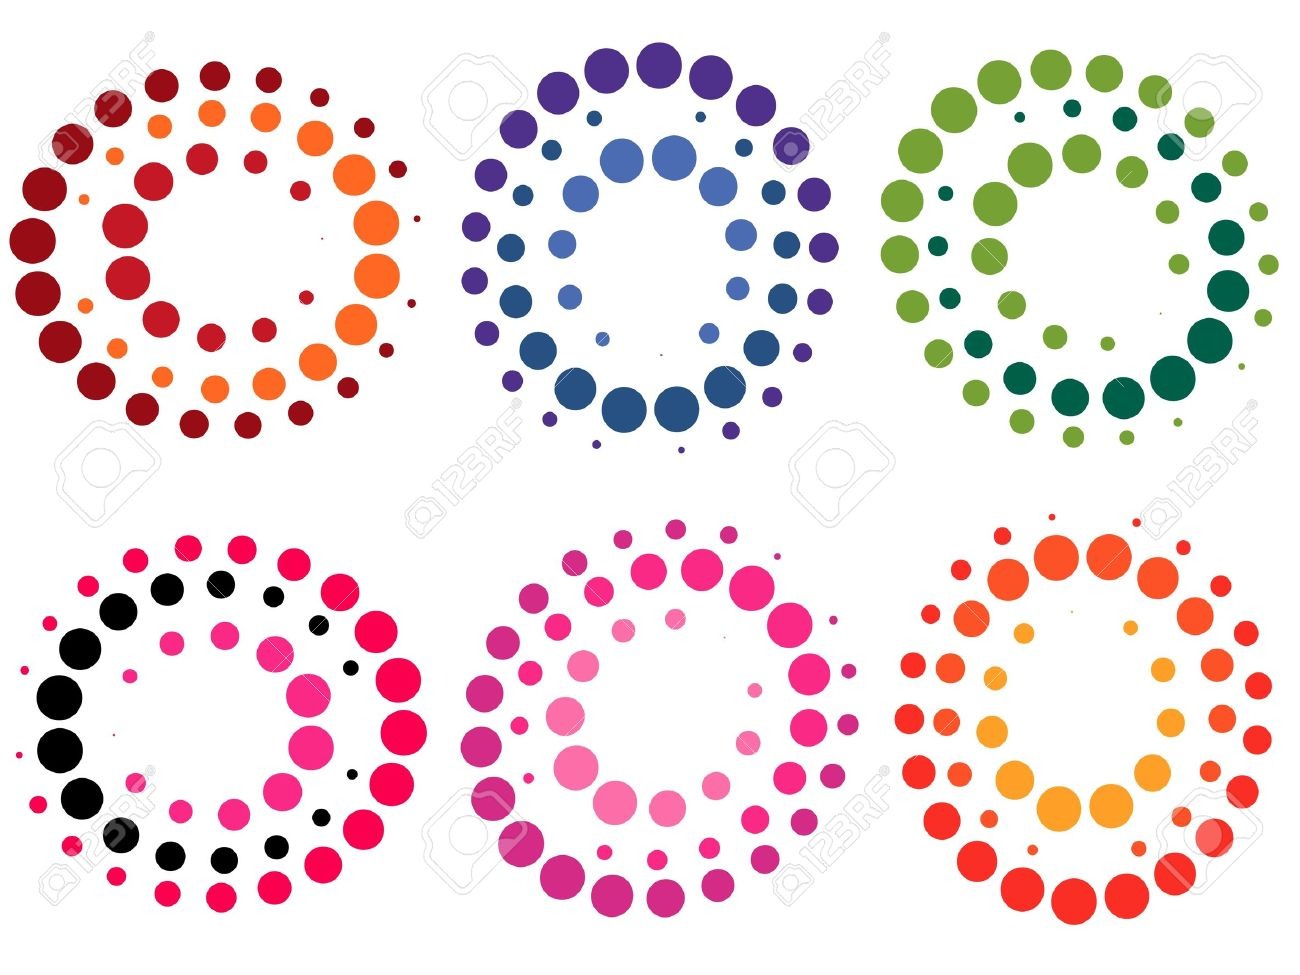 Collection Of Colored Dot Symbols Illustration Royalty Free